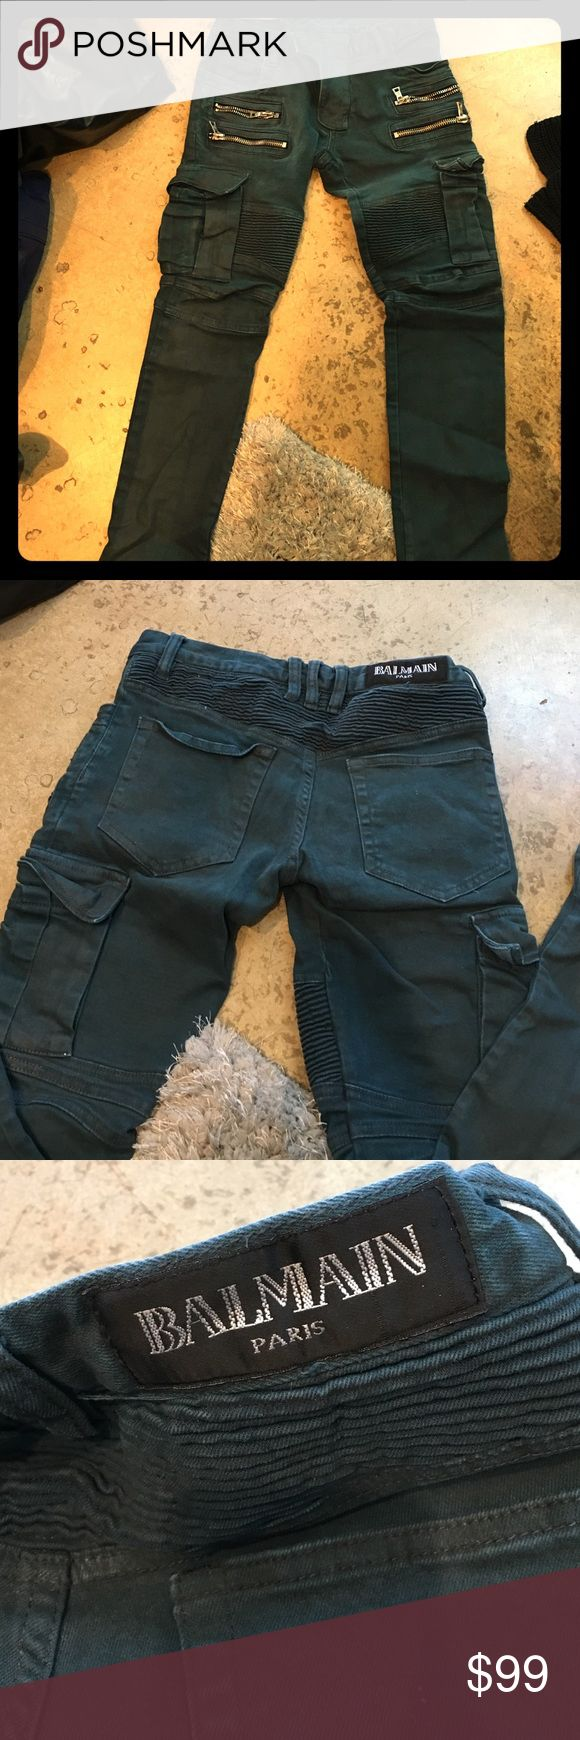 BALMAIN Cargo pants s29 Balmain jeans,size 29 but runs as 27. Made in Japan. They are coated and the color is Peacock. Missing 1 loop but is not really needed to function. These are pre-owned. Washed. Sample sale purchase. Balmain Jeans Skinny